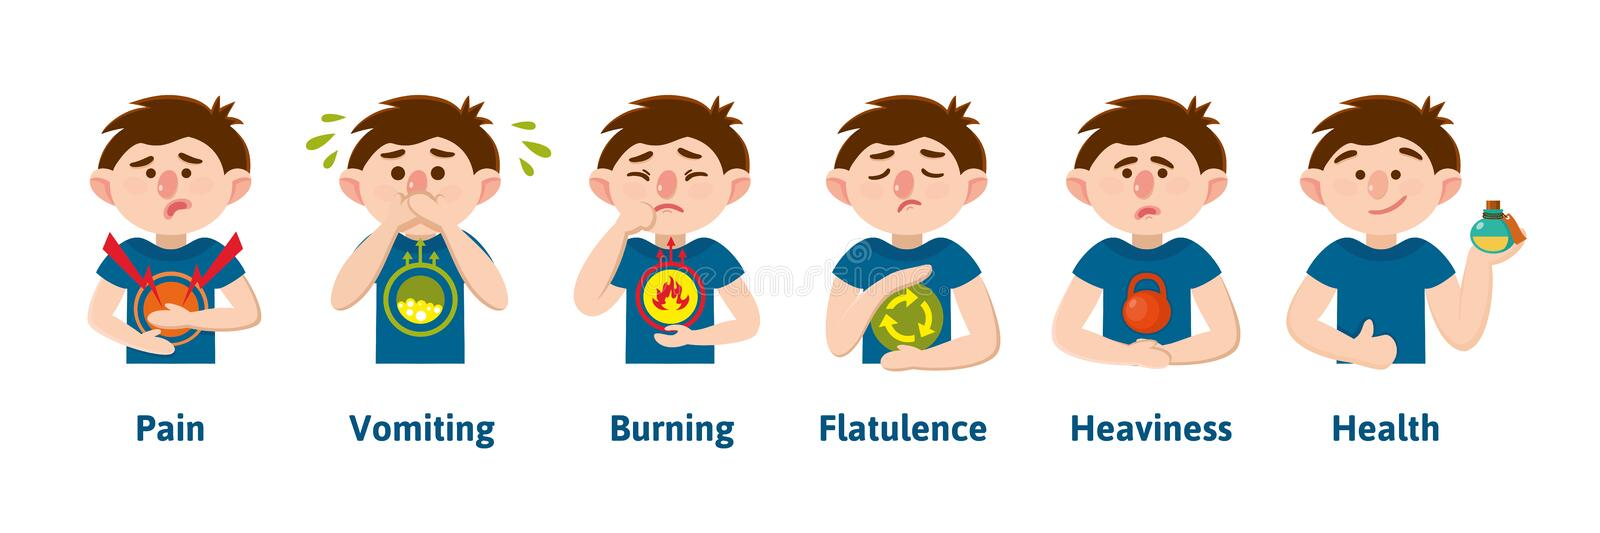 Medical poster with Gastritis symptoms and signs. Flat, isolated cartoon illustration. Infographic elements for web graphics stock illustration